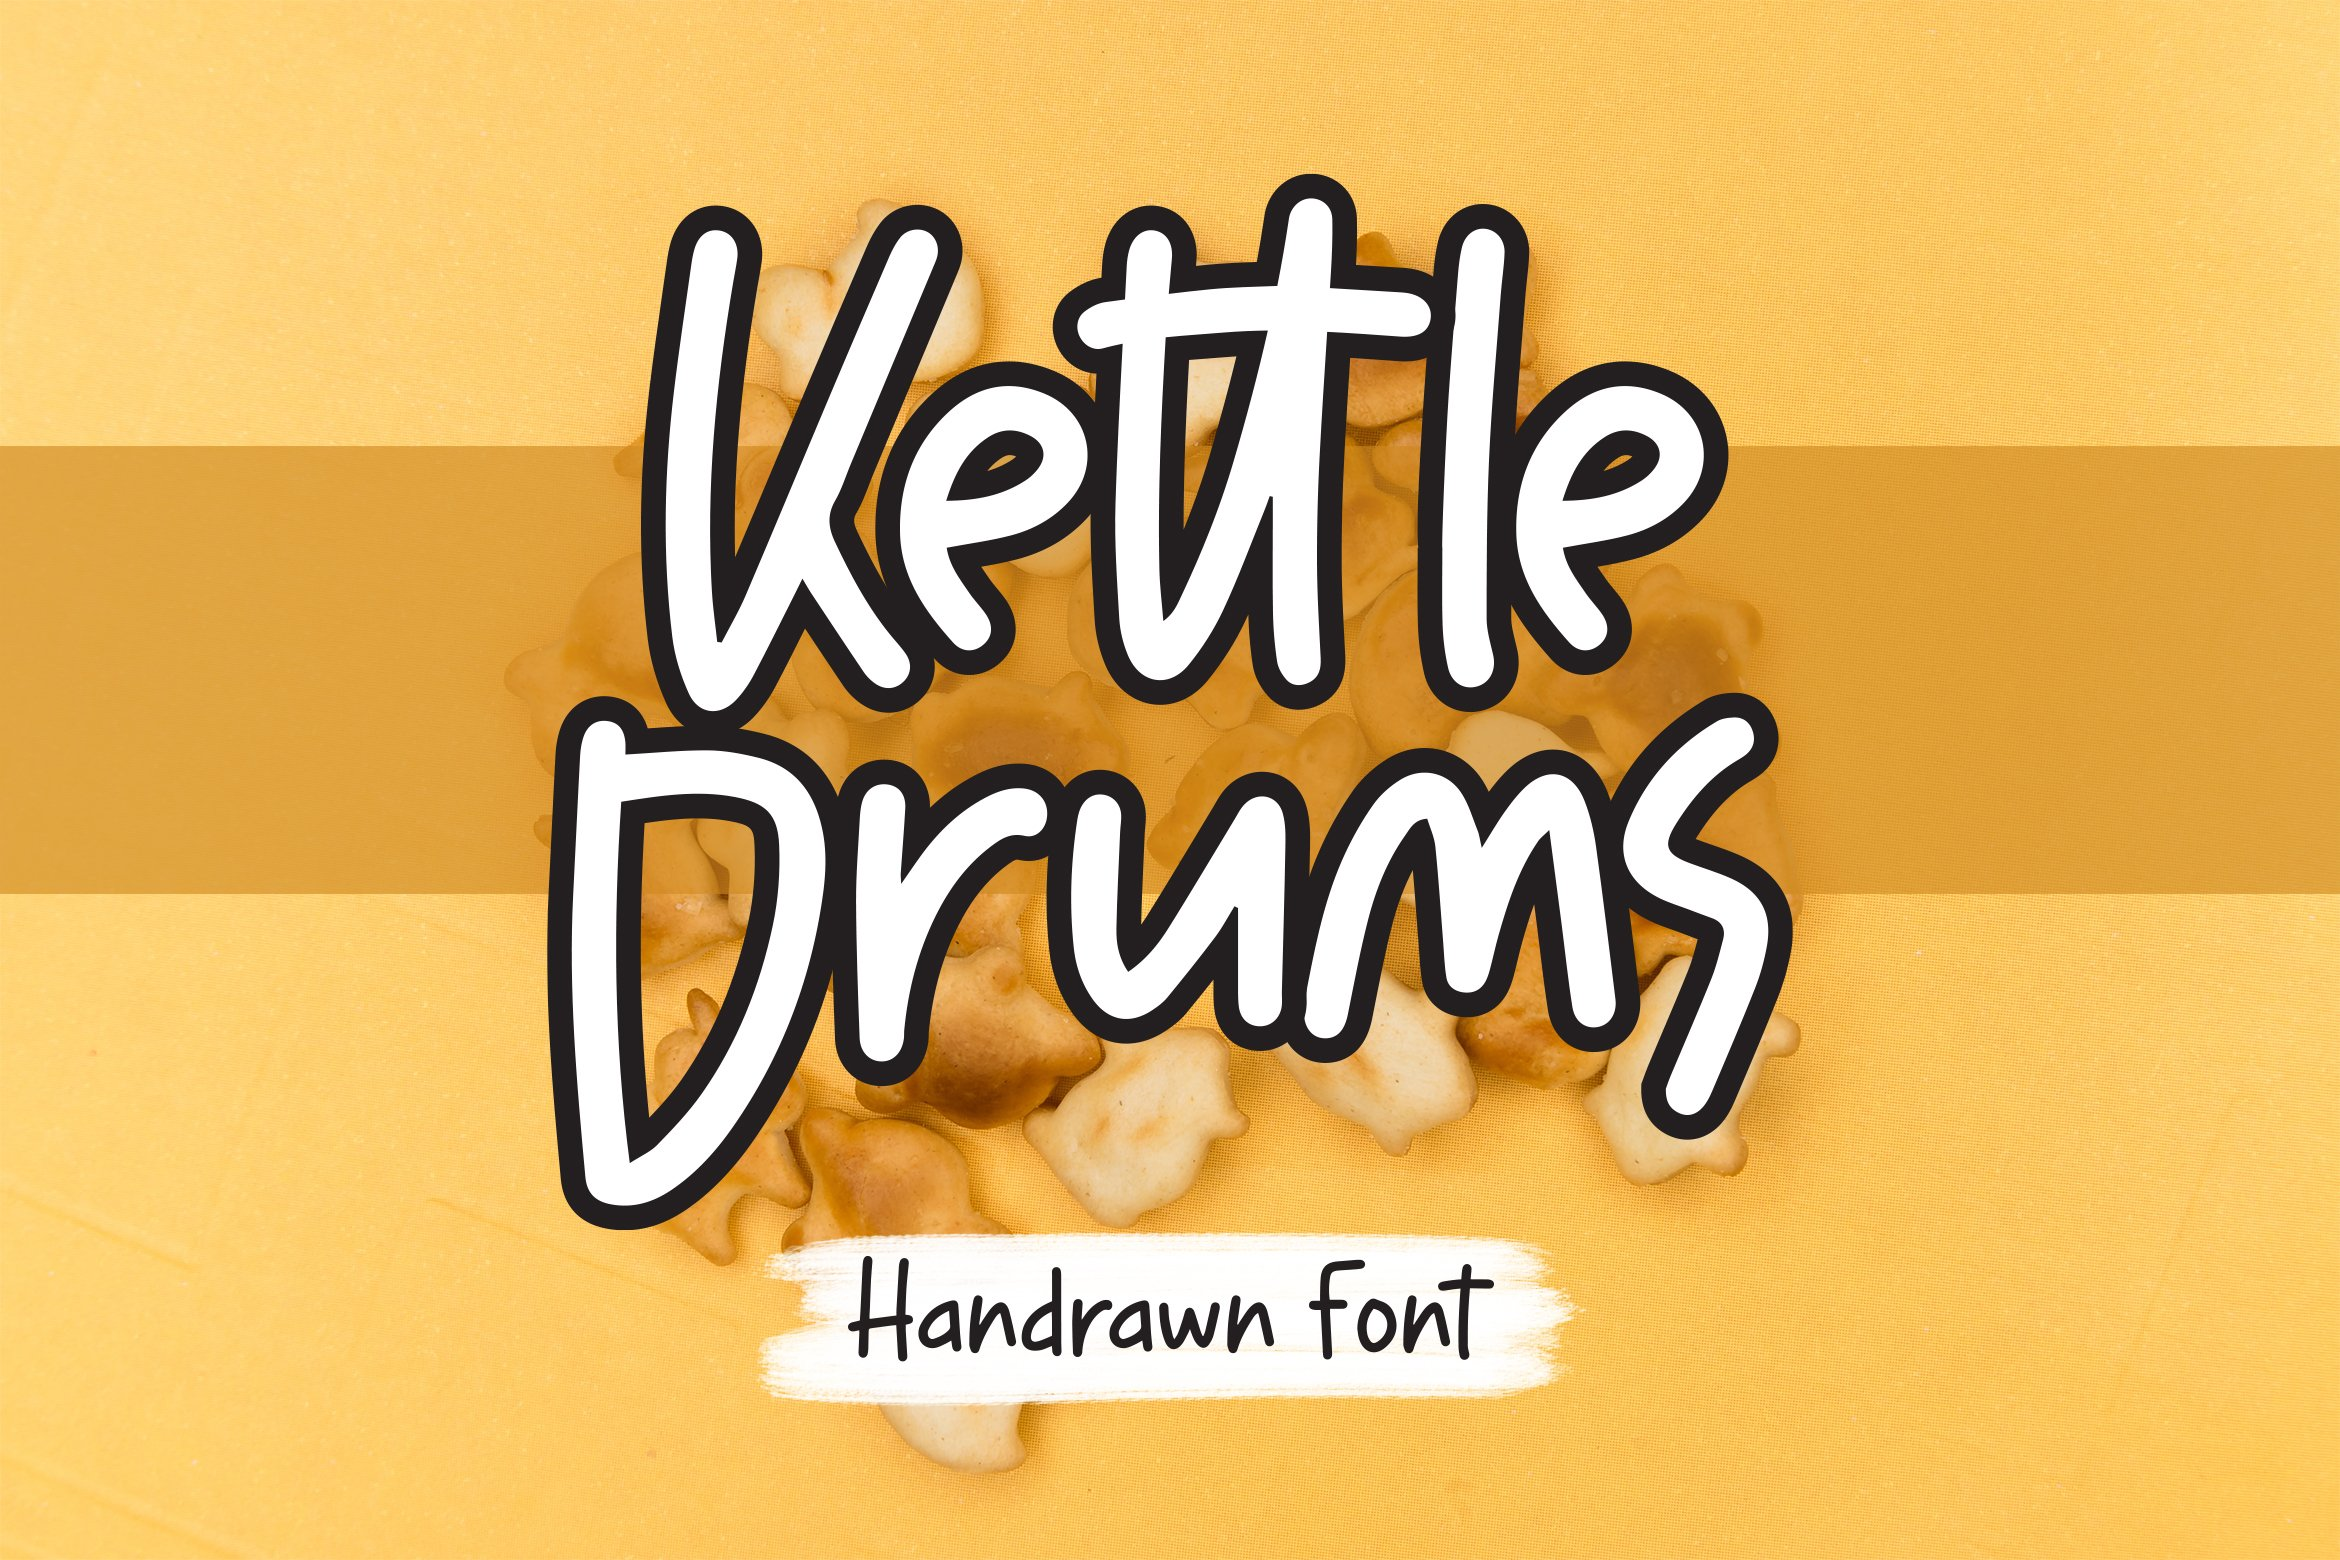 Kettledrums - Handrawn Font example image 1